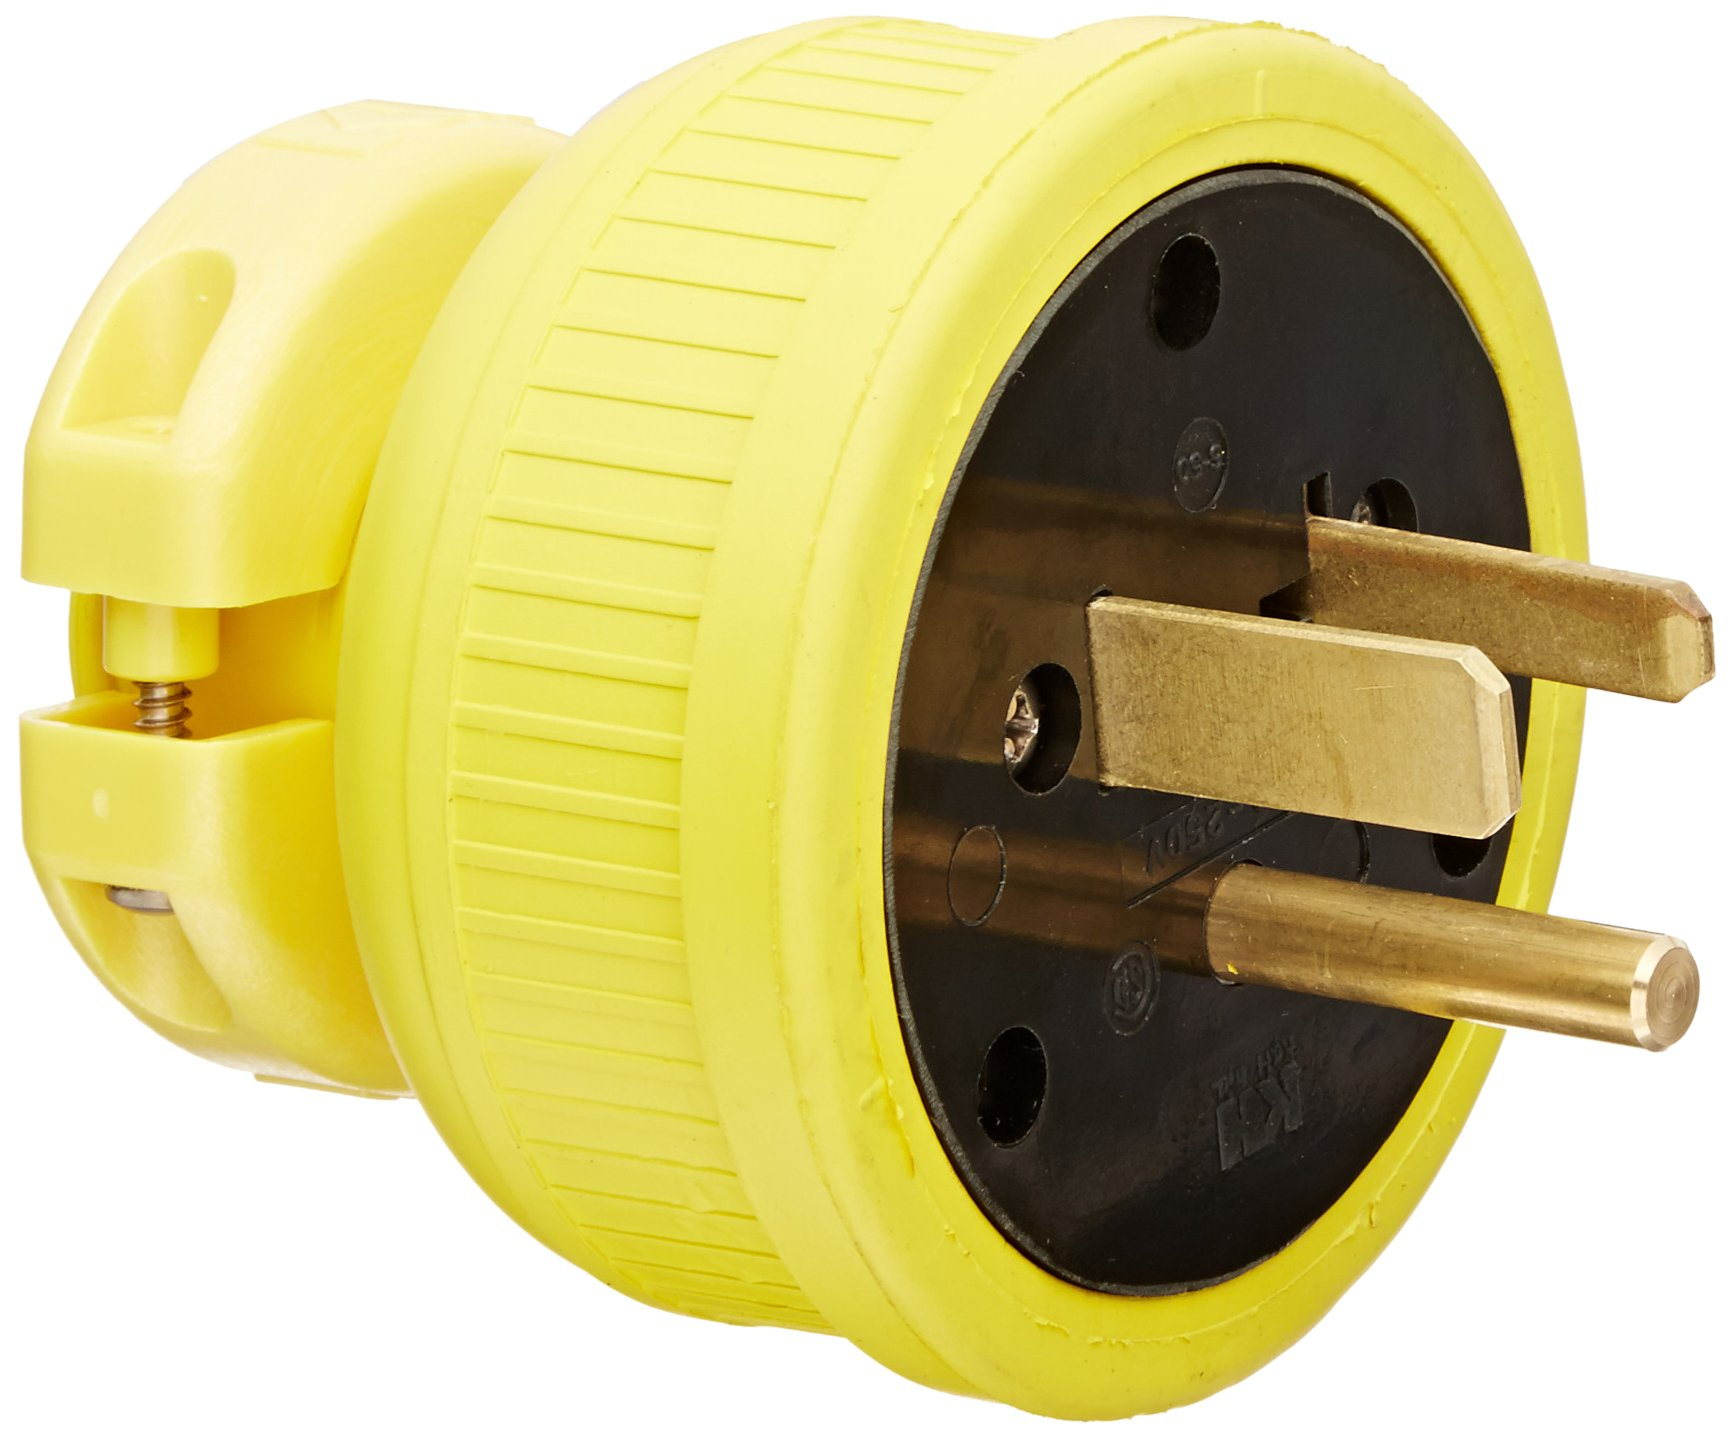 KH Industries P650DF Rubber/Polycarbonate Rewireable Flip Seal Straight Blade Plug, 2 Pole/3 Wire, 50 amps, 250V AC, Yellow by KH Industries